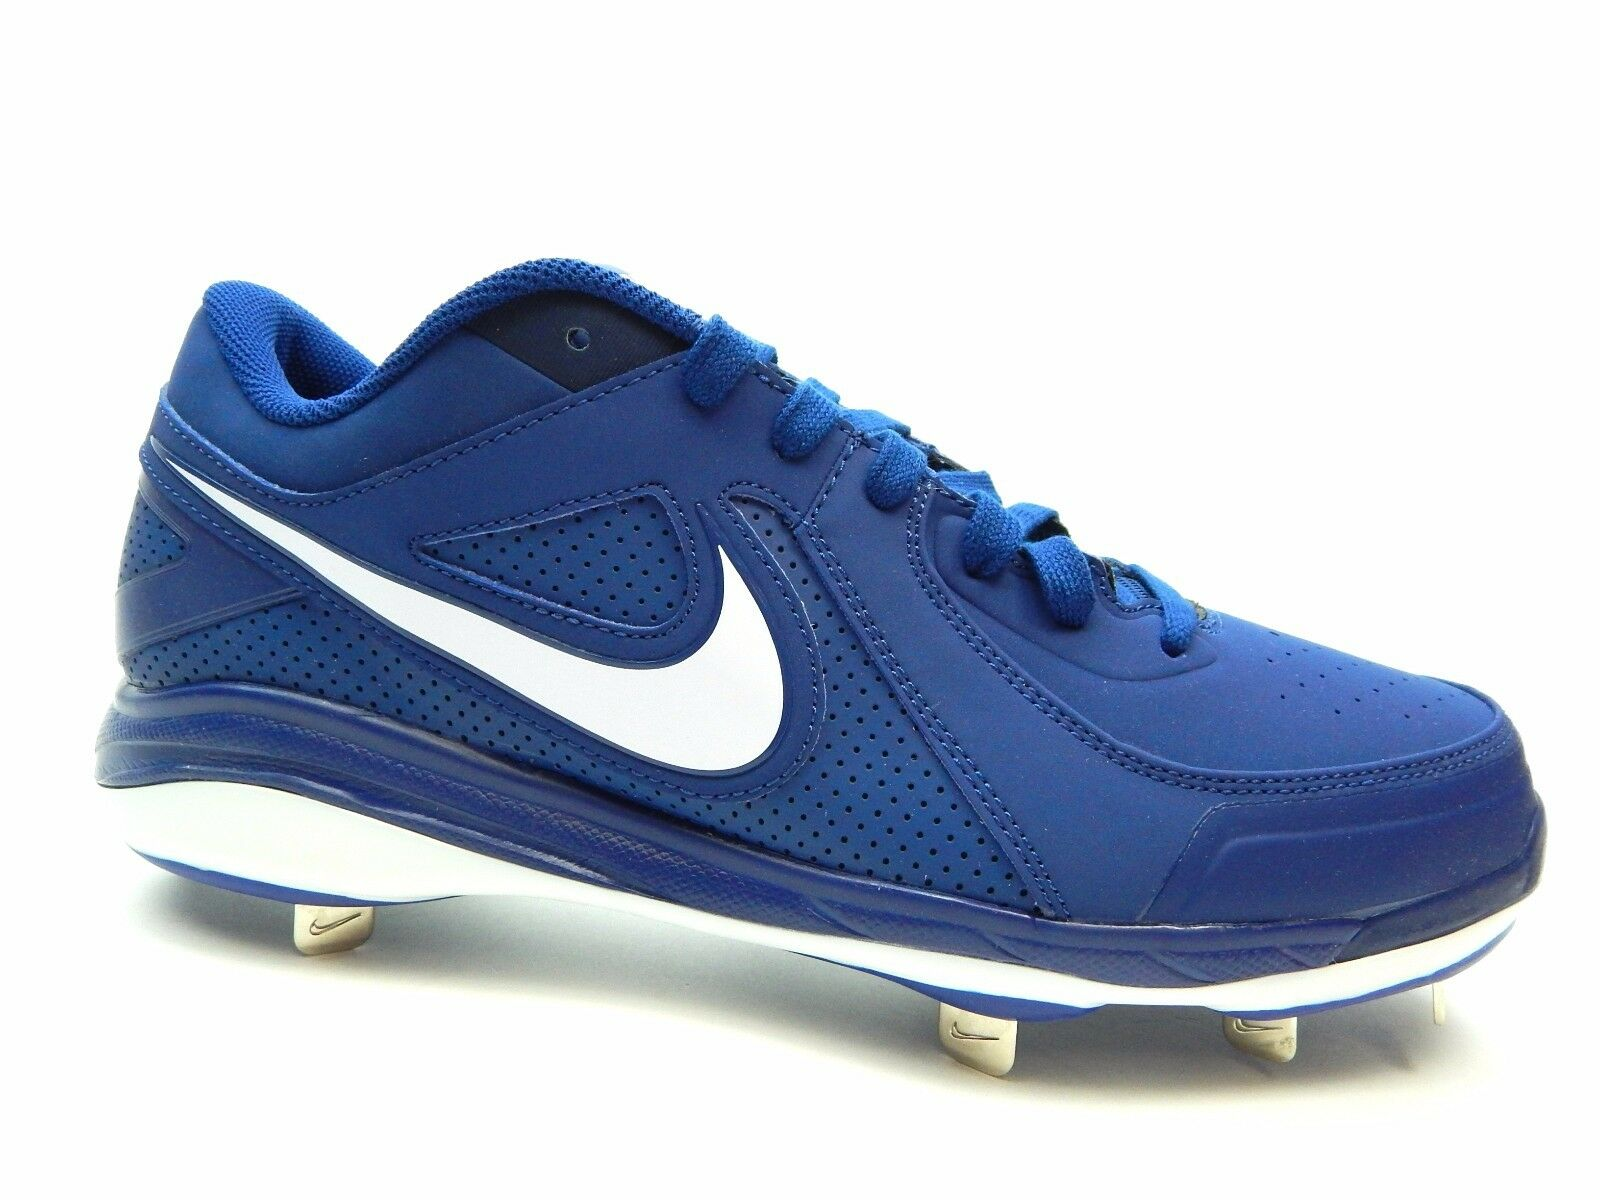 New shoes for men and women, limited time discount Nike Air MVP Pro Metal 524641 410 Men Baseball Cleats deep royal SIZE 8 TO 12.5